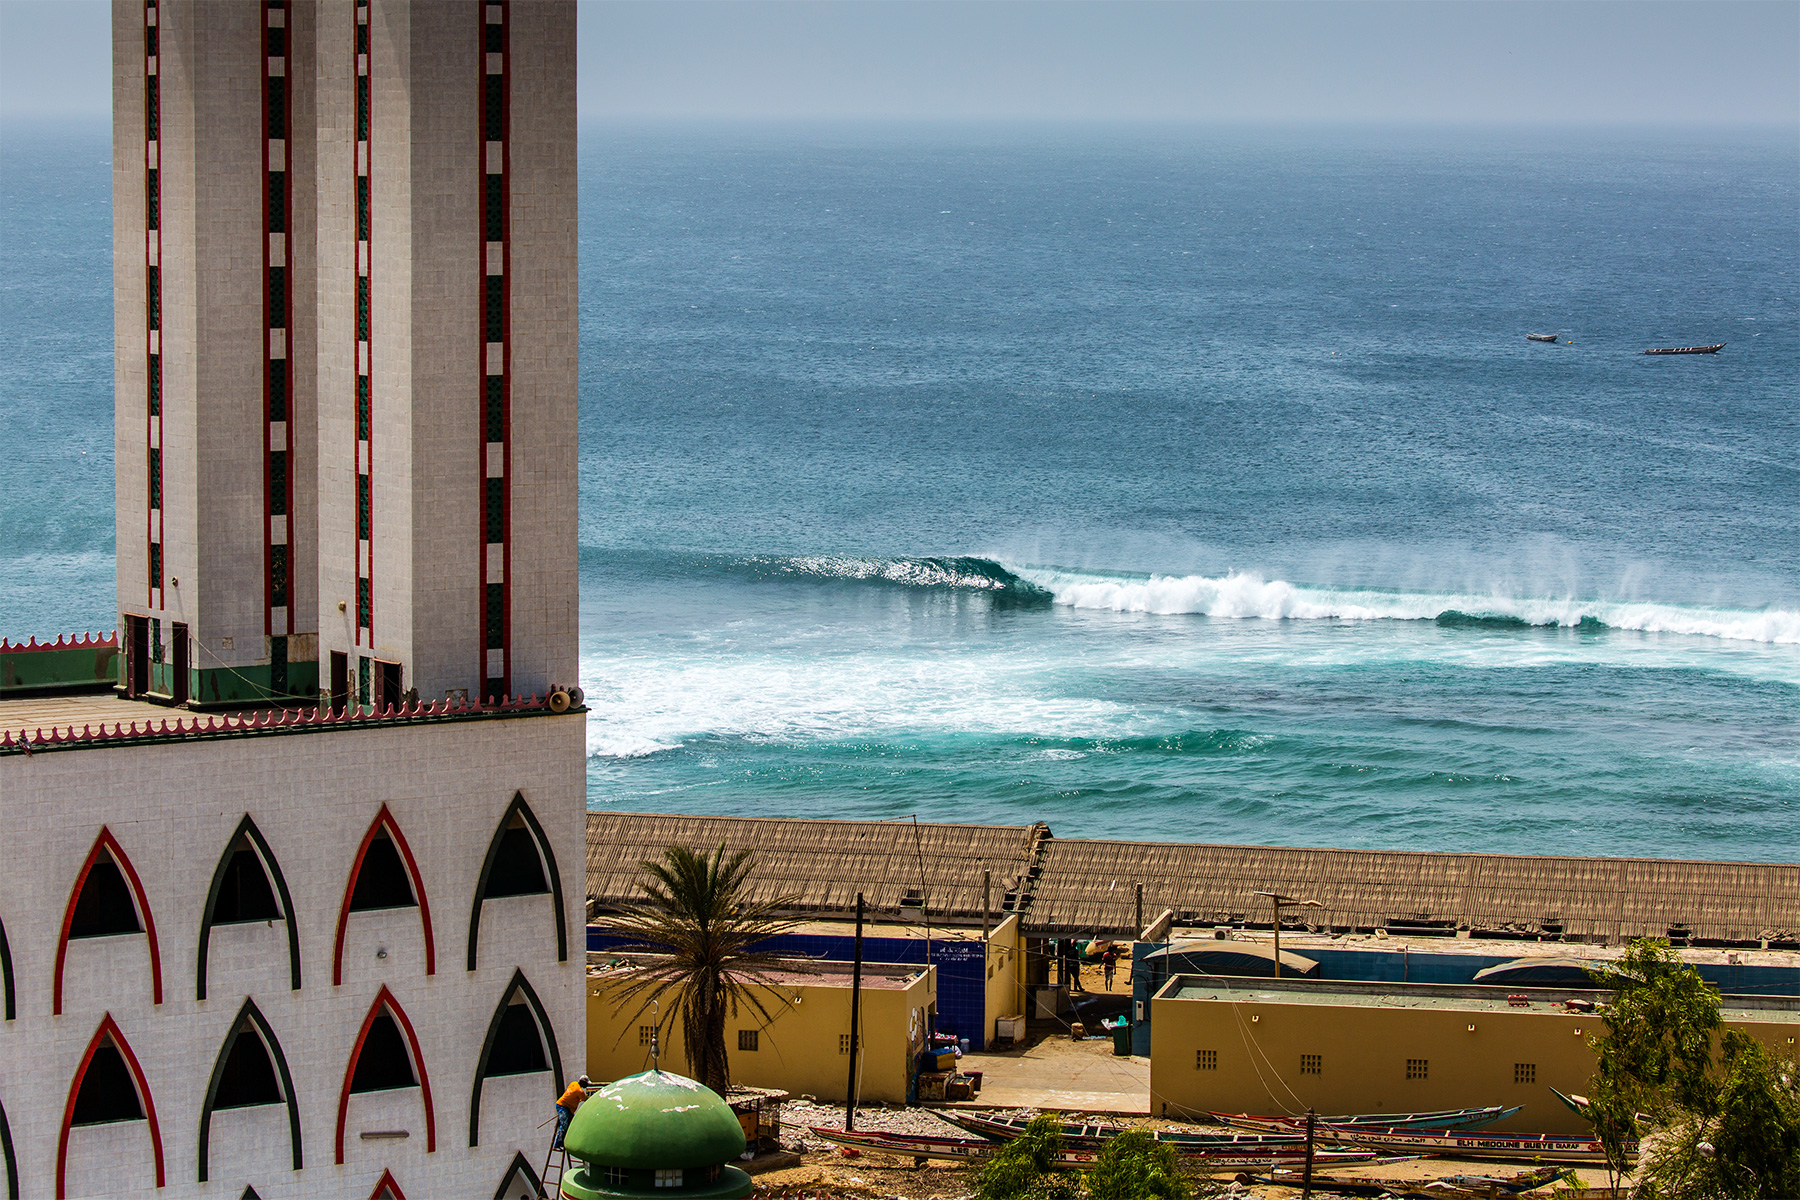 a wave braking at Ouakam in front of the mosque, dakar, senegal. photographed by Andy Grainger